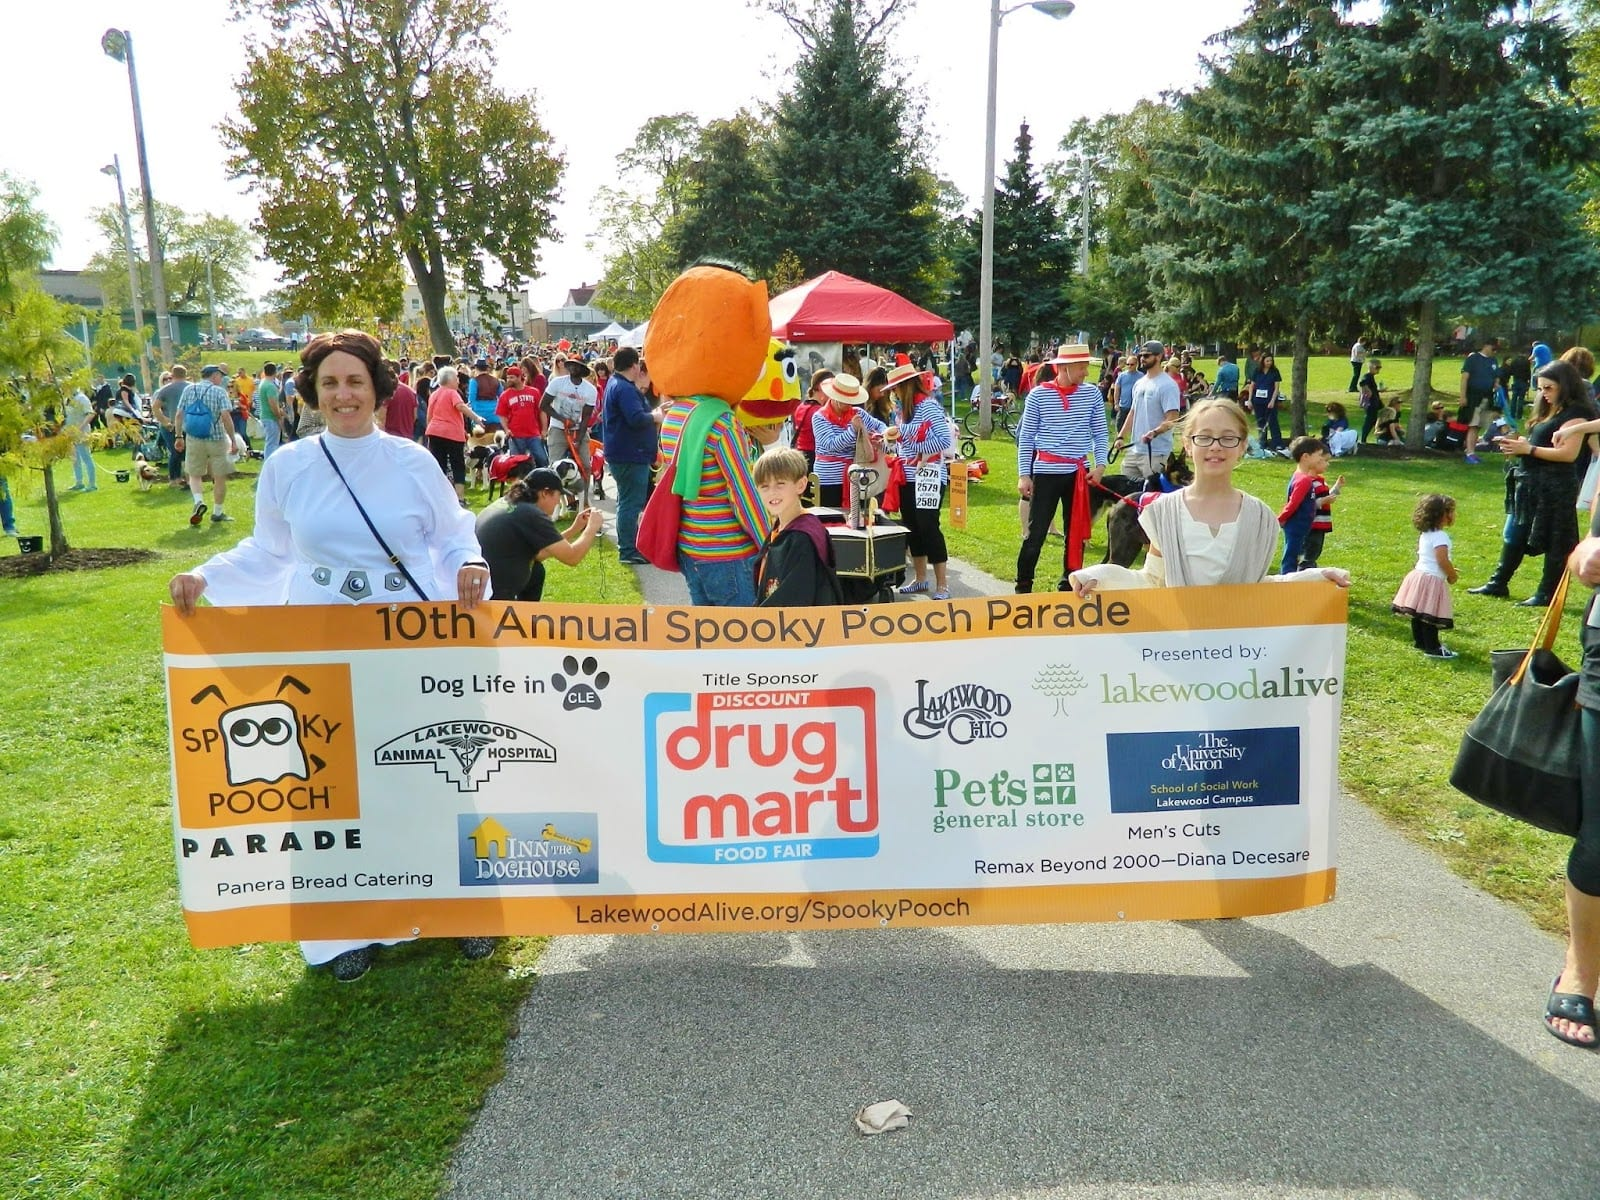 Discount Drug Mart, LakewoodAlive Spooky Pooch Parade